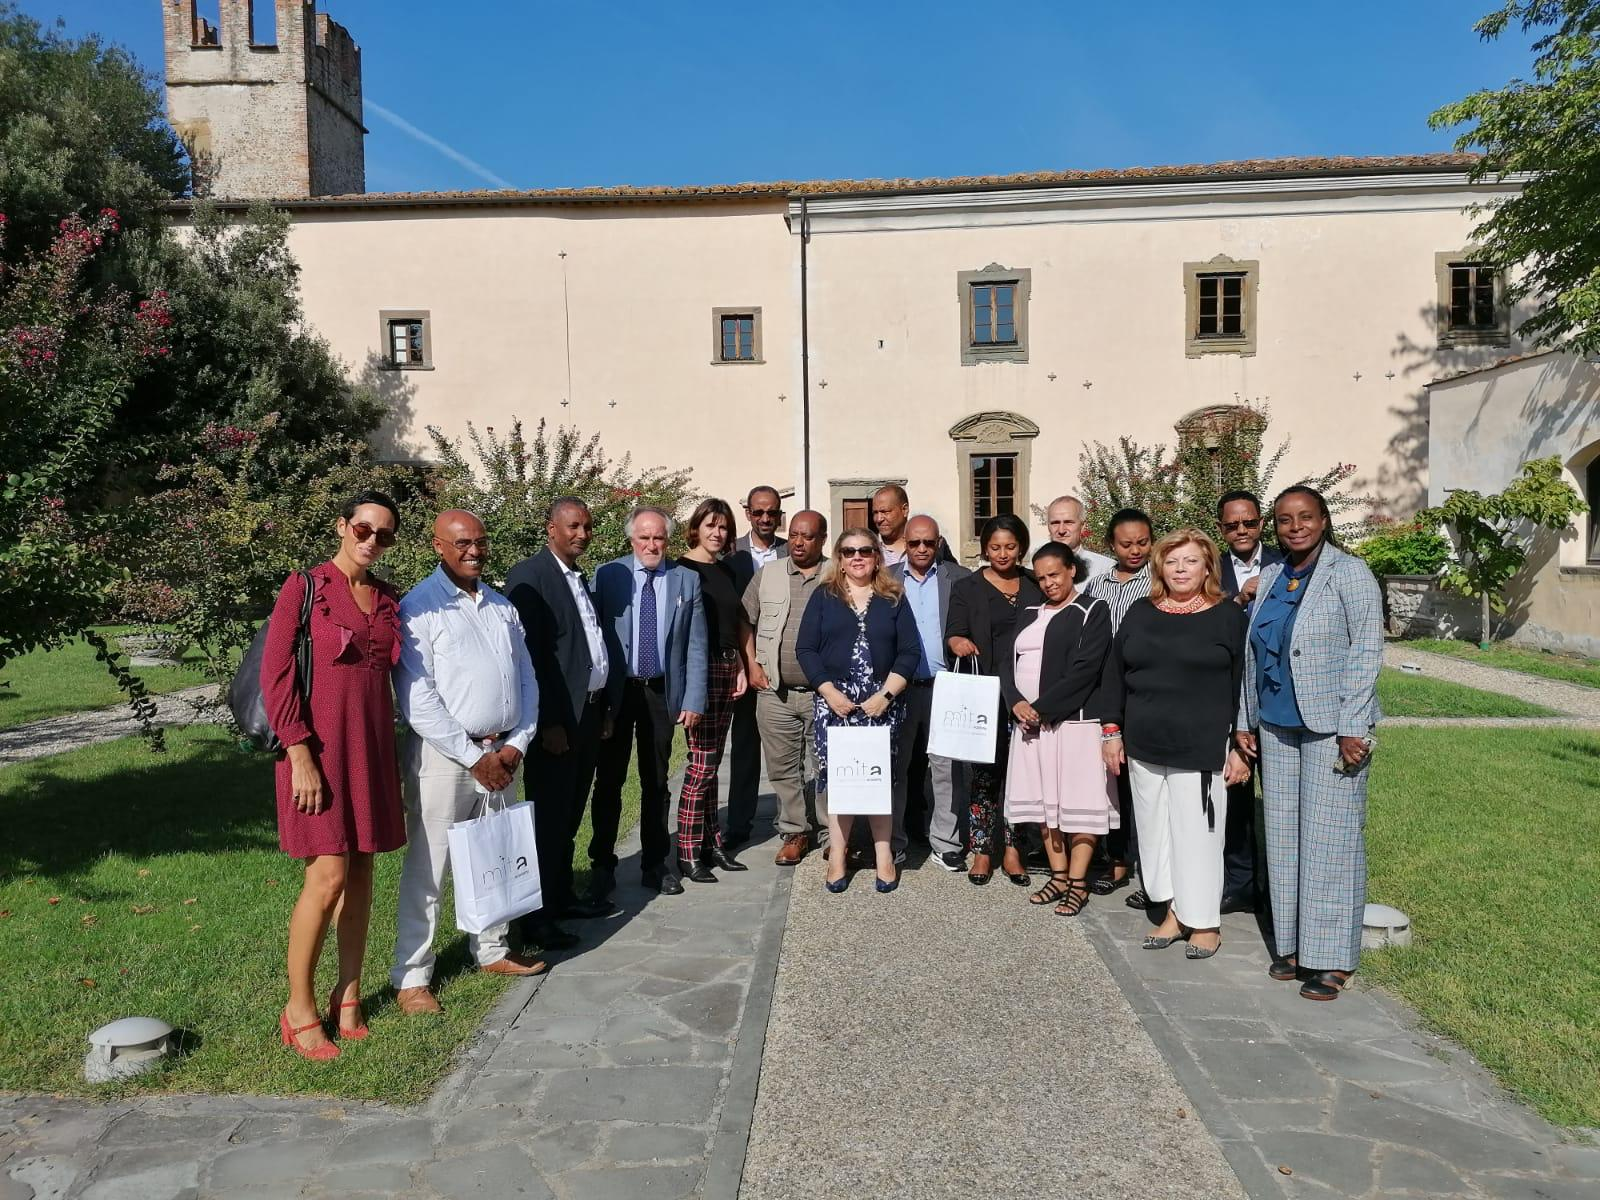 La delegazione in visita all'Its Mita